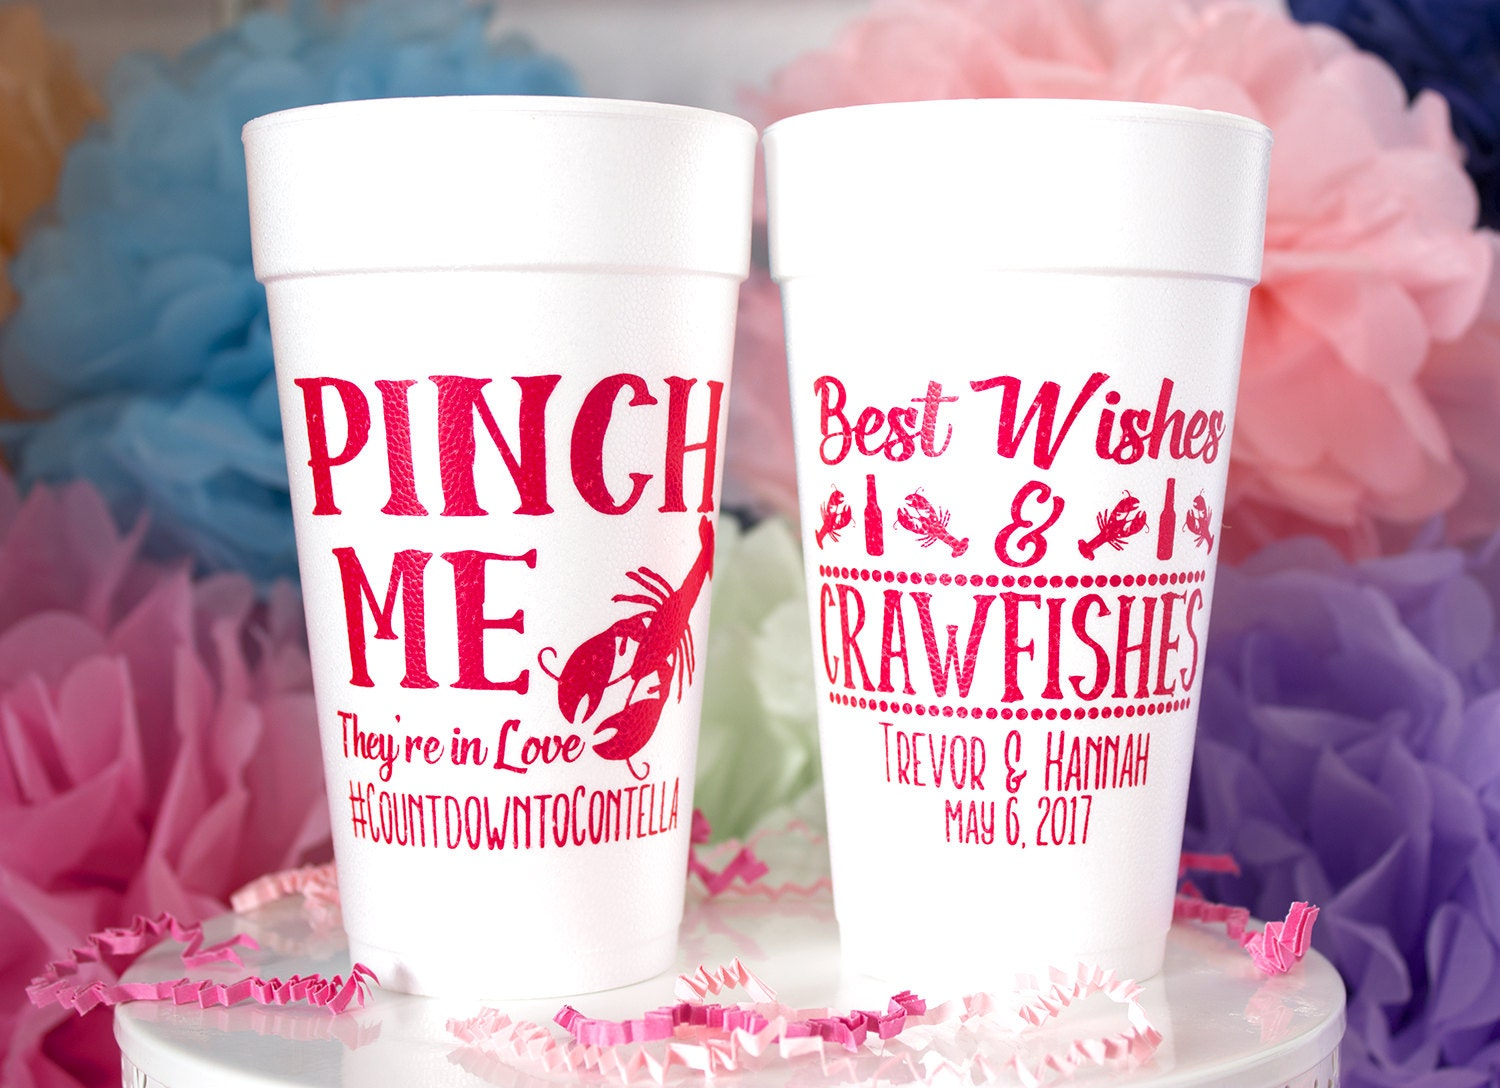 Crawfish Boil Pinch Me Cups Louisiana Wedding NOLA Wedding